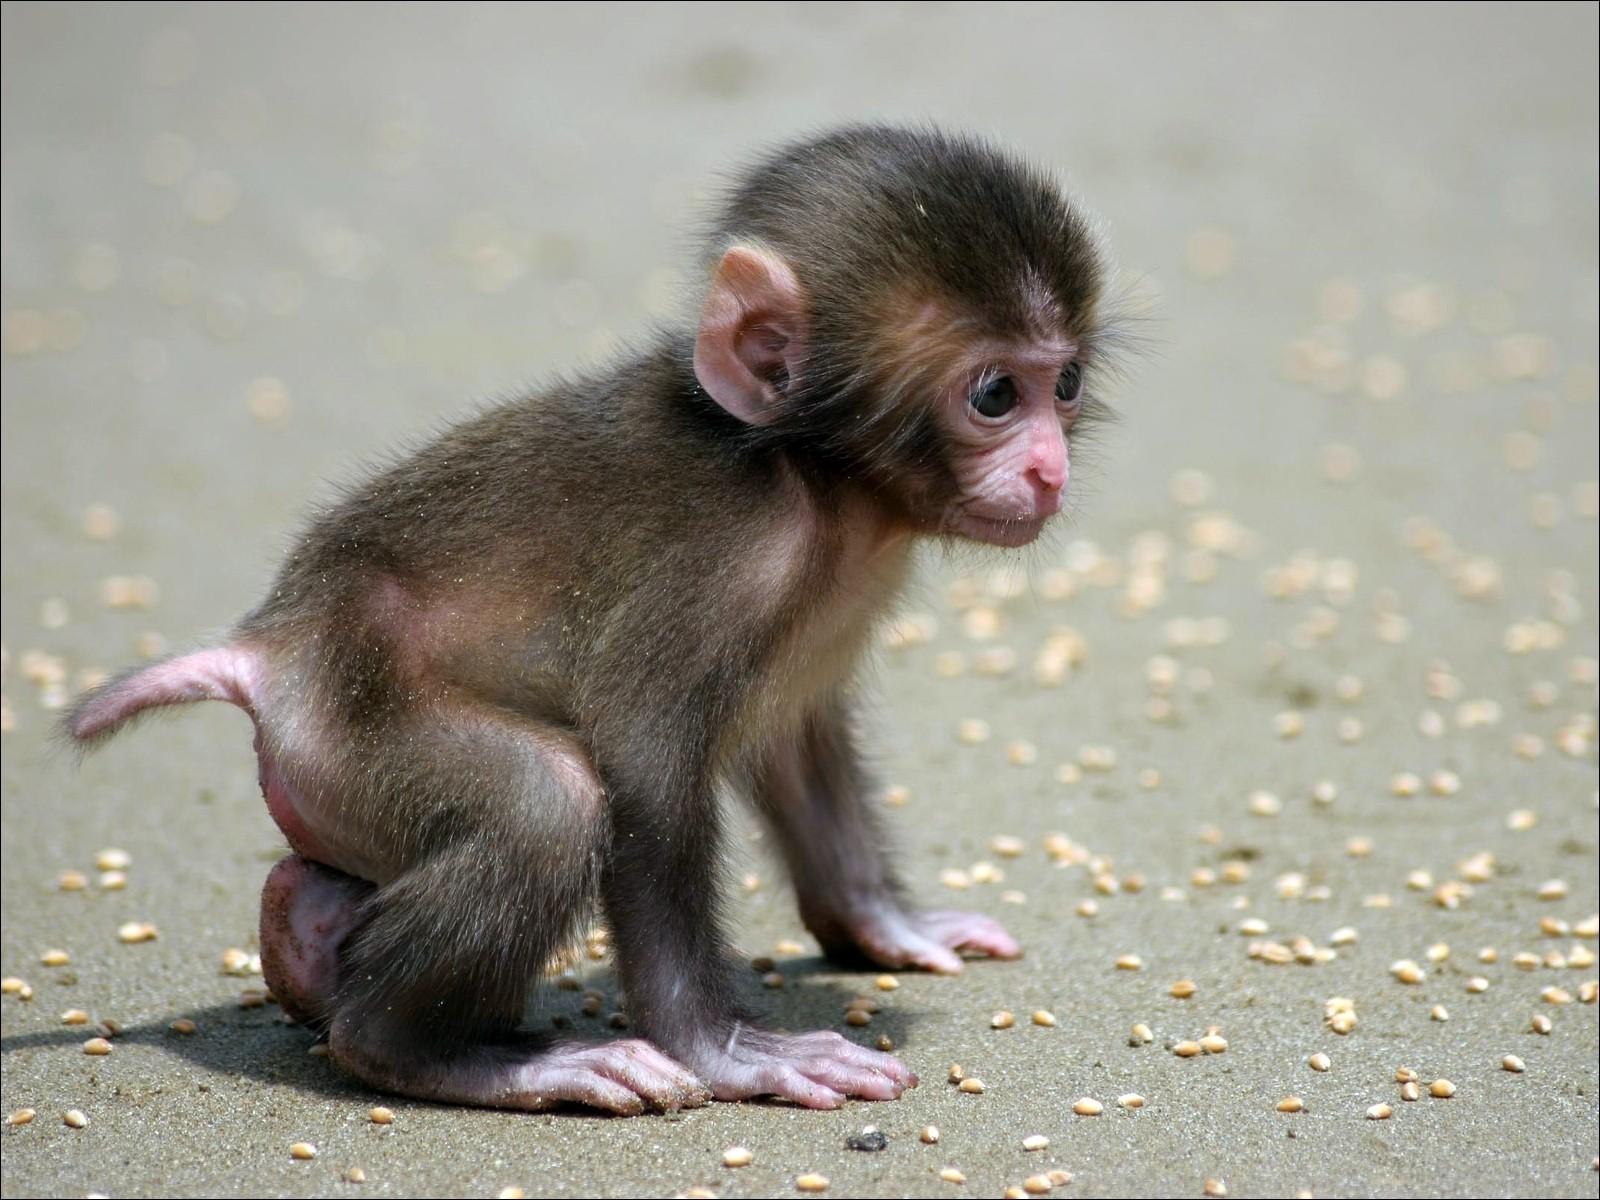 Monkey Wallpaper And Background Image 1600x1200 Id 353961 Images, Photos, Reviews